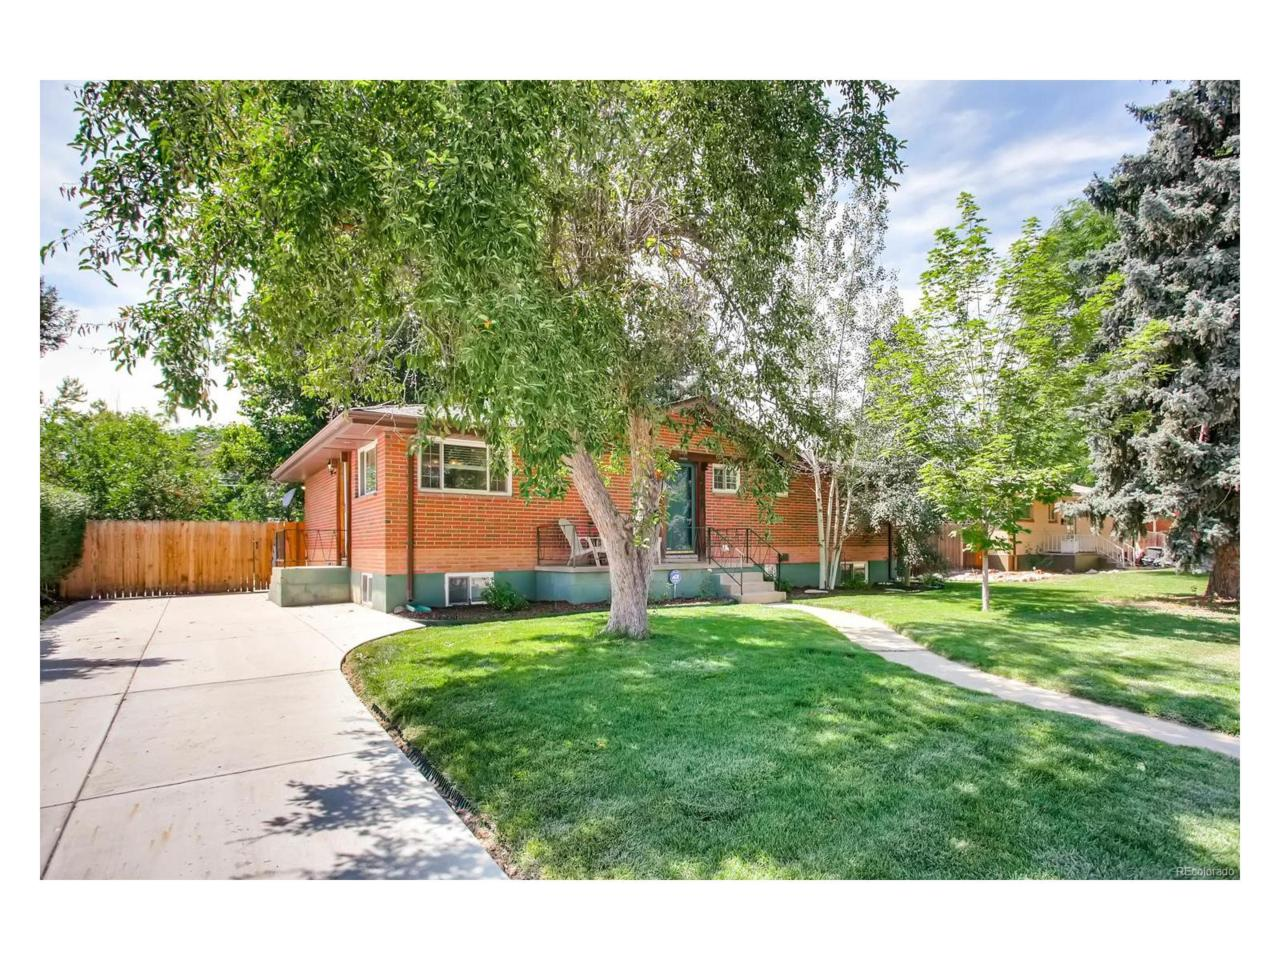 6175 S Valleyview Street, Littleton, CO 80120 (MLS #5809174) :: 8z Real Estate